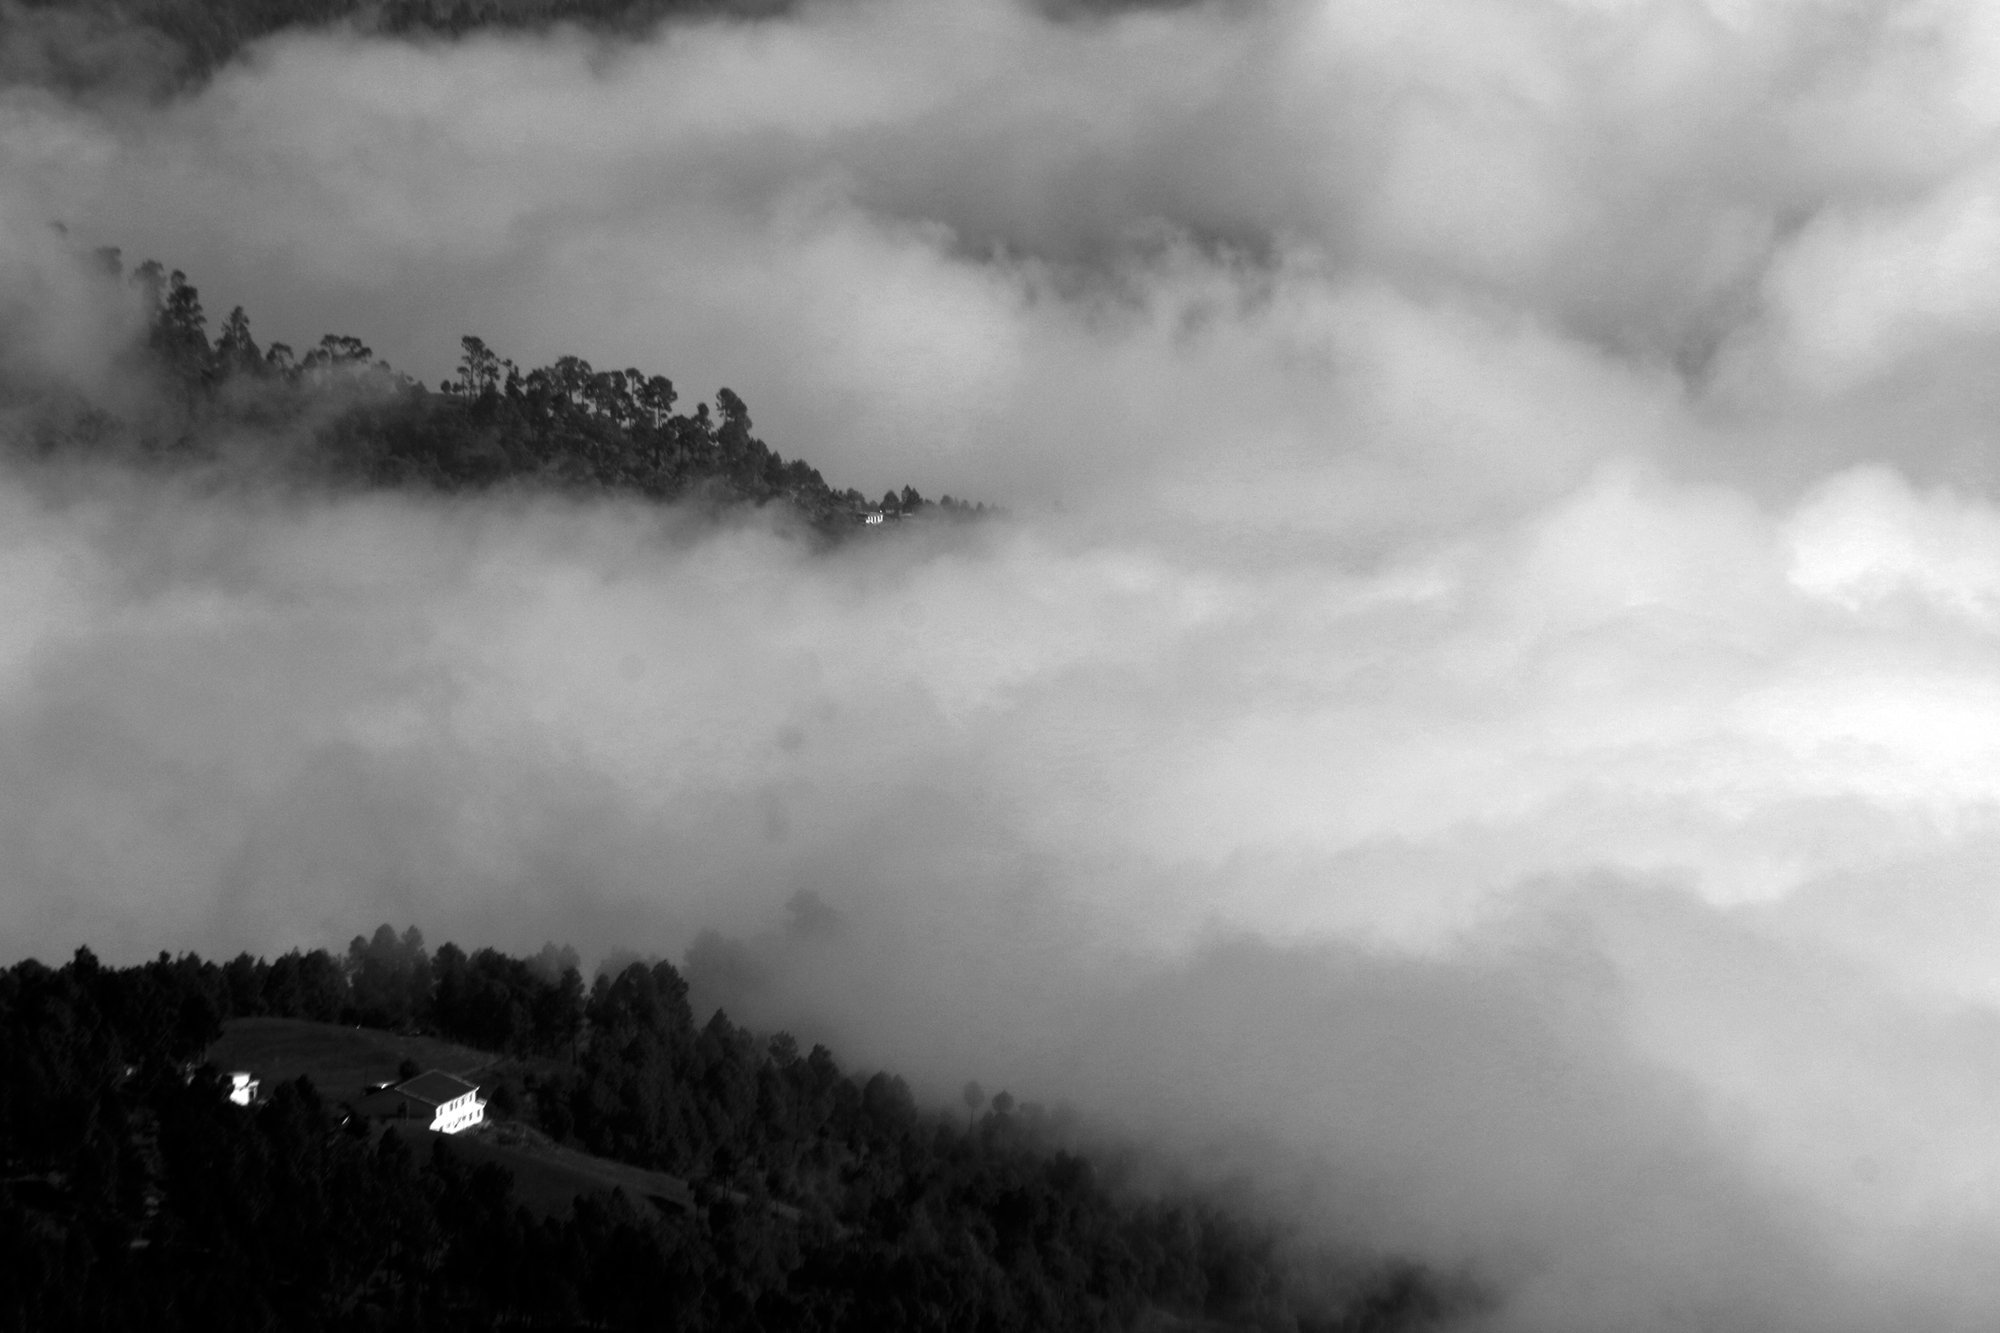 A Misty Mountain in Black and White